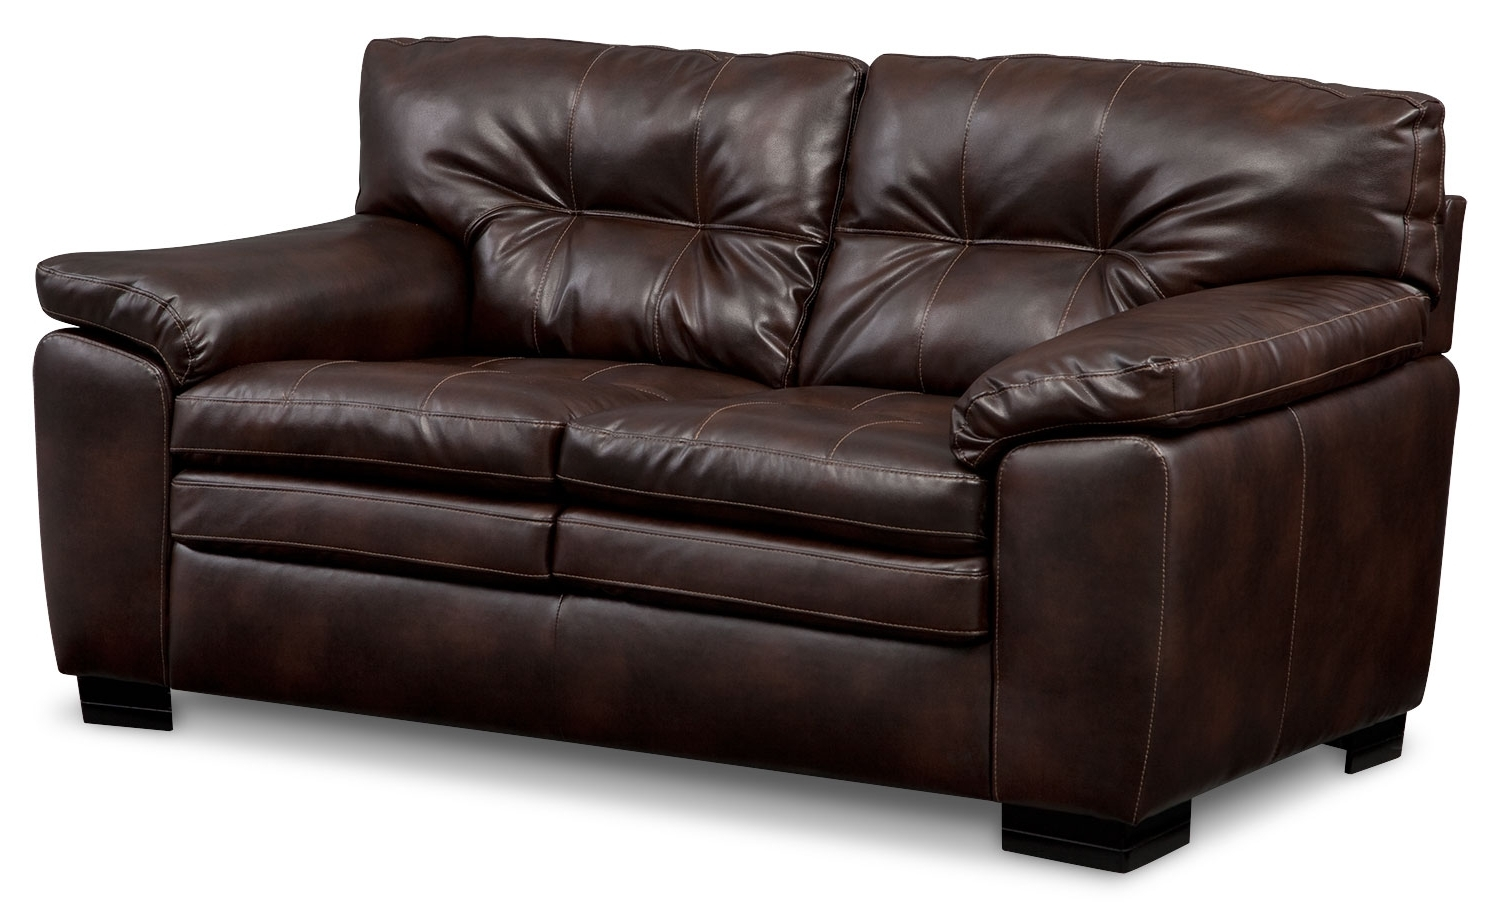 Sectional Sofas Under 500 With Well Known Sofa : Beige Sofa Set Beige Fabric Classic Living Room Sofa (View 16 of 20)